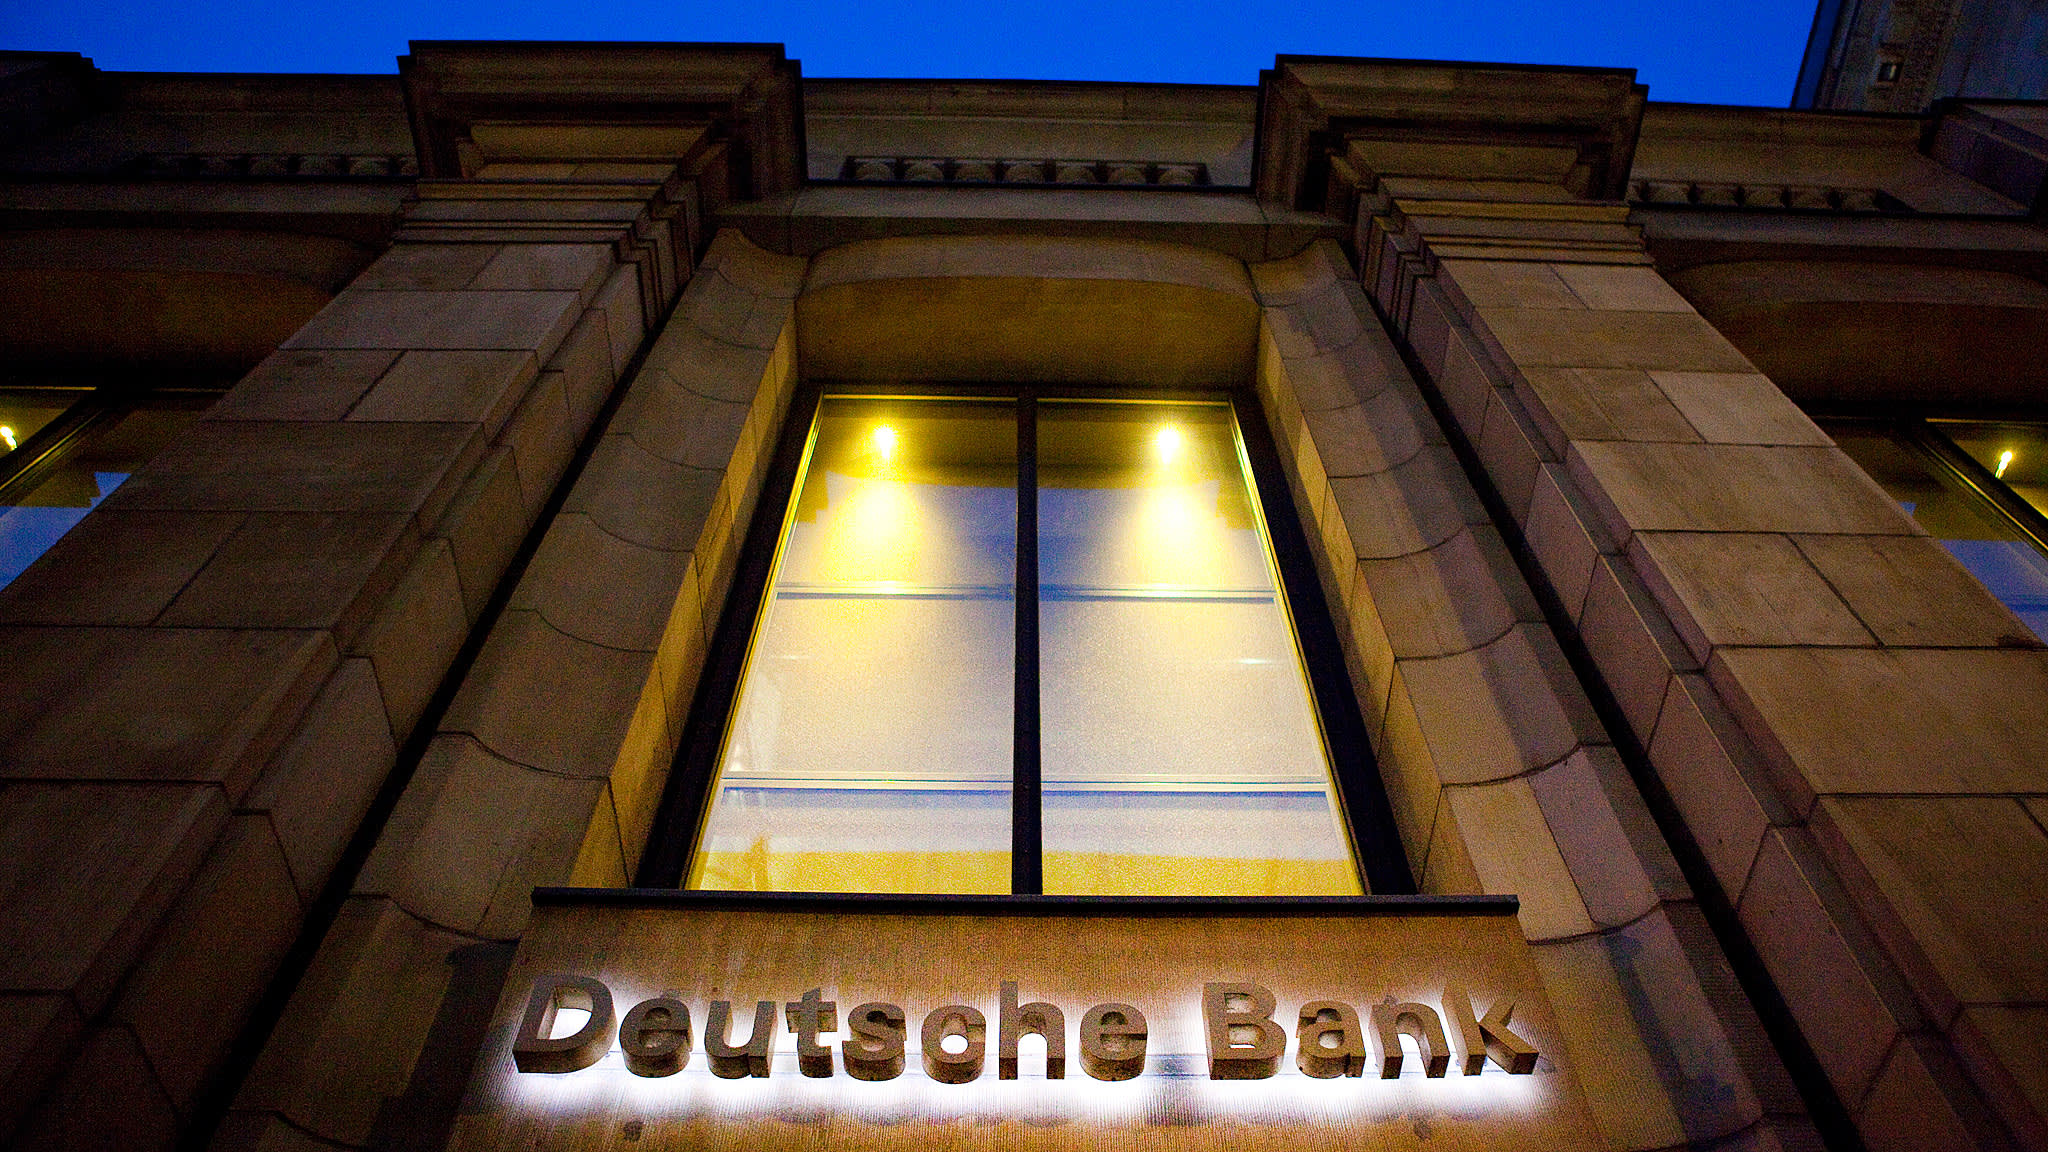 Deutsche Bank co-chiefs' pay rises by half | Financial Times